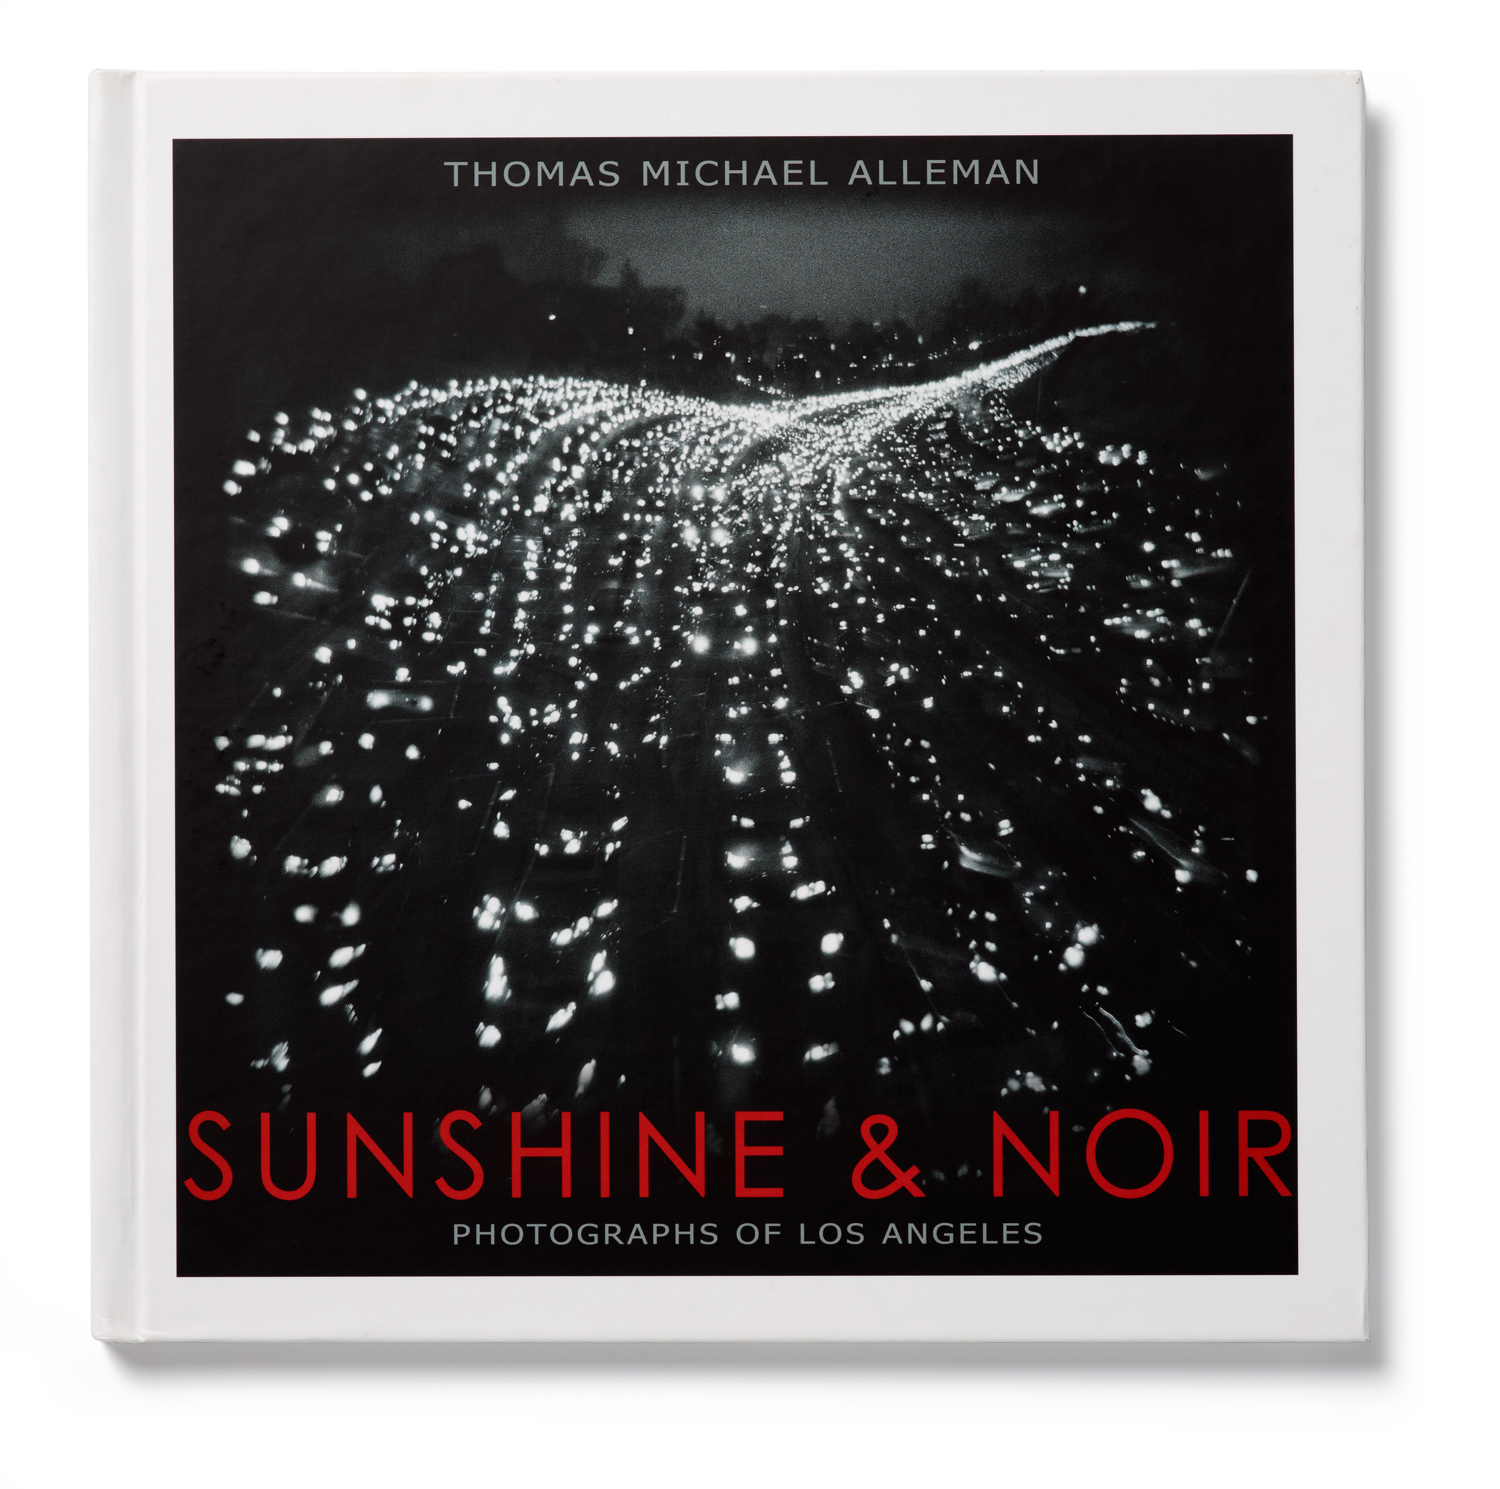 The travel category winner, judged by Claudia Hinterseer of the Noor agency was from Thomas Michael Alleman's Sunshine & Noir: Photographs from Los Angeles.